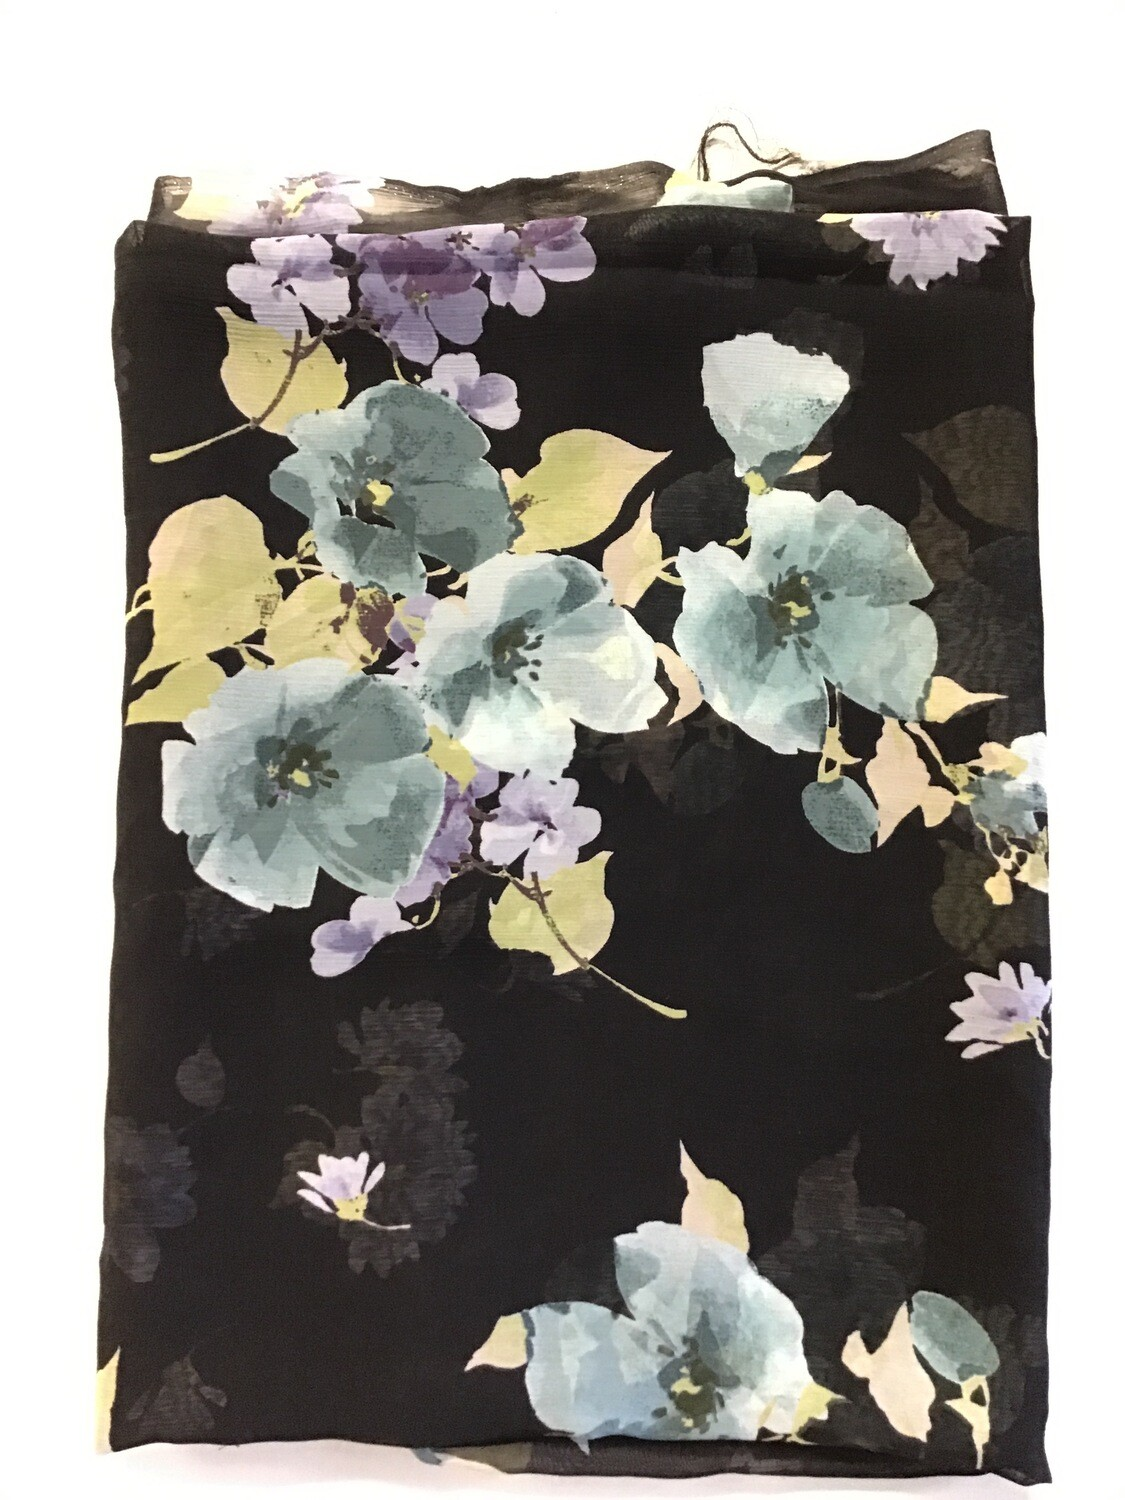 Fabric: Sheer Black Floral